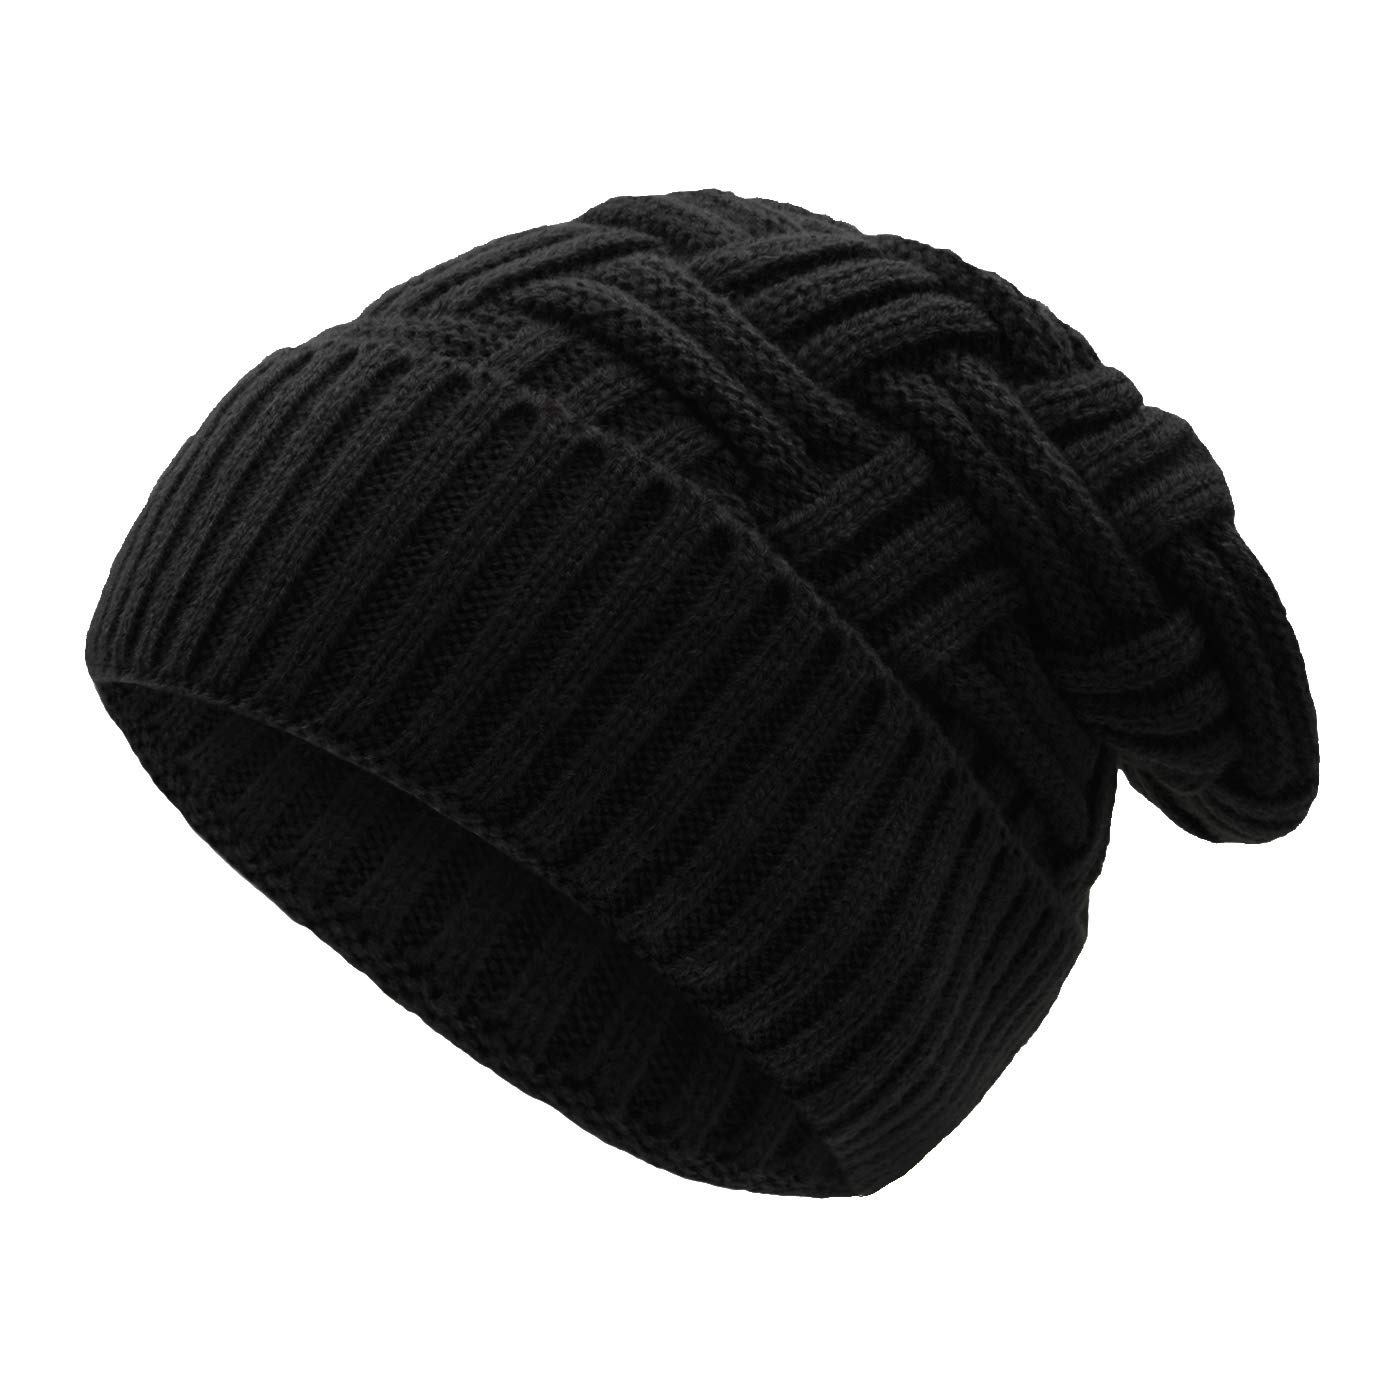 8f8d873a570 UPhitnis Winter Beanie Hat for Men Women